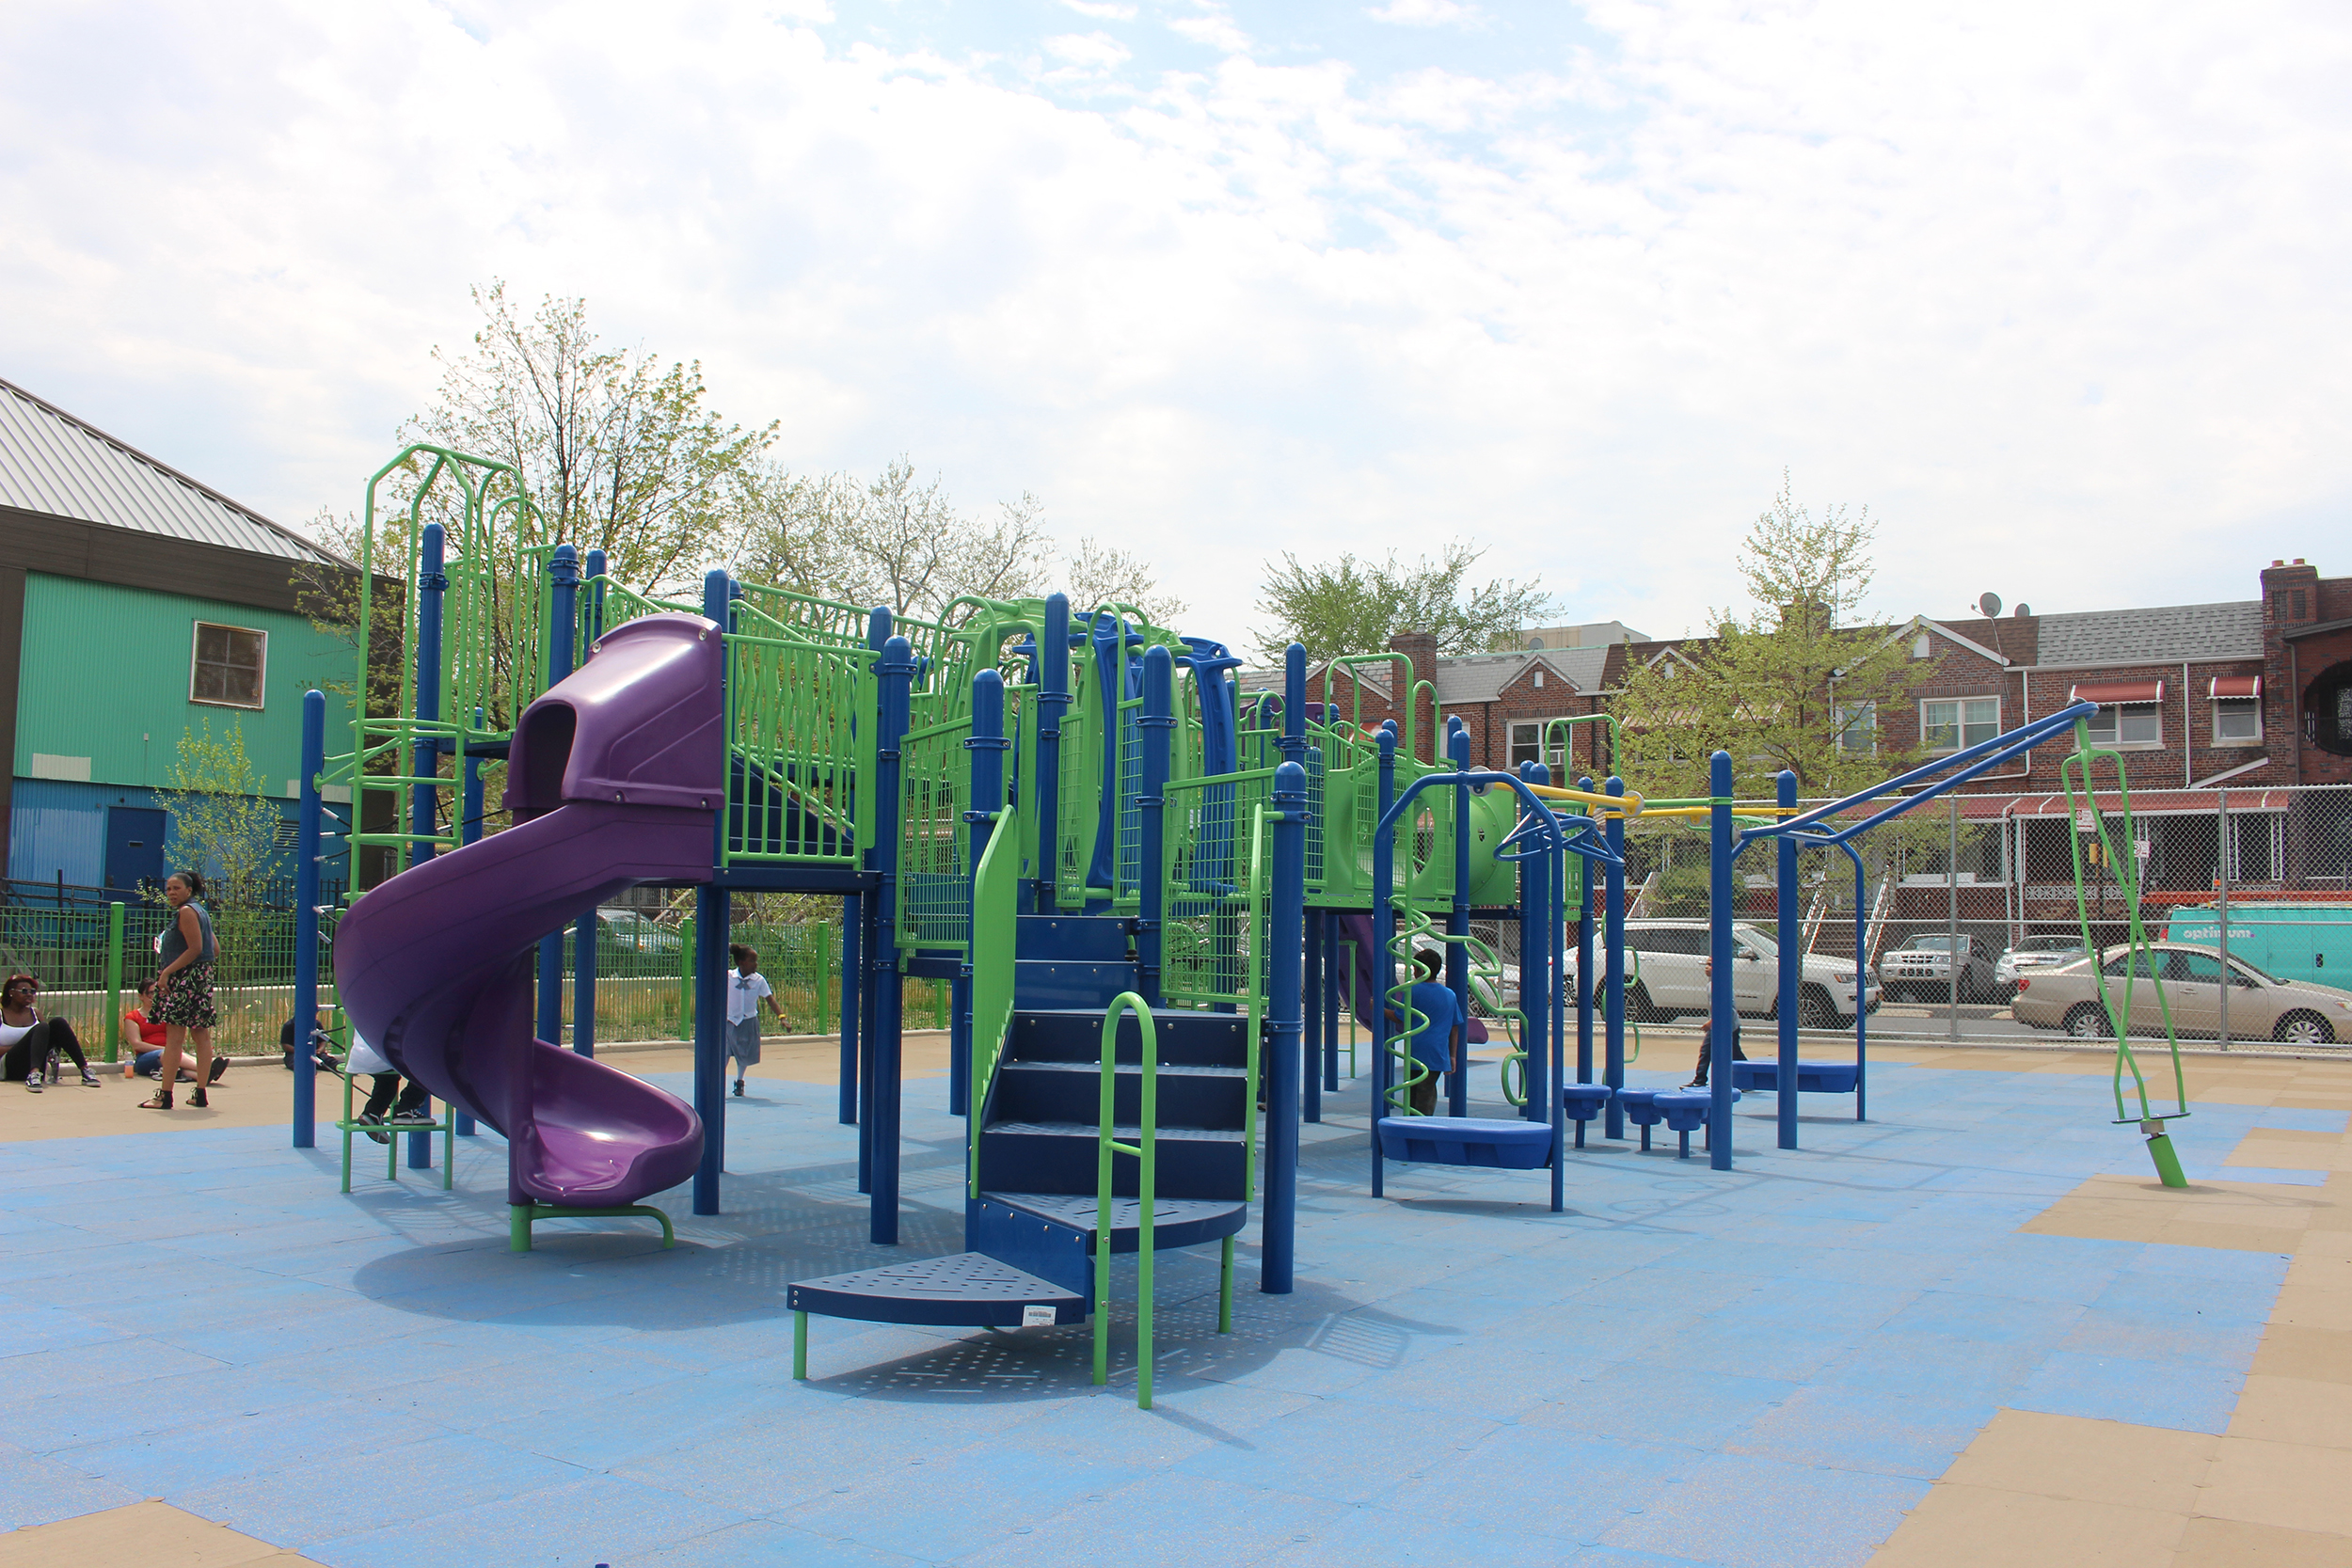 Purple, Green, and Blue Play Equipment at PS 235K